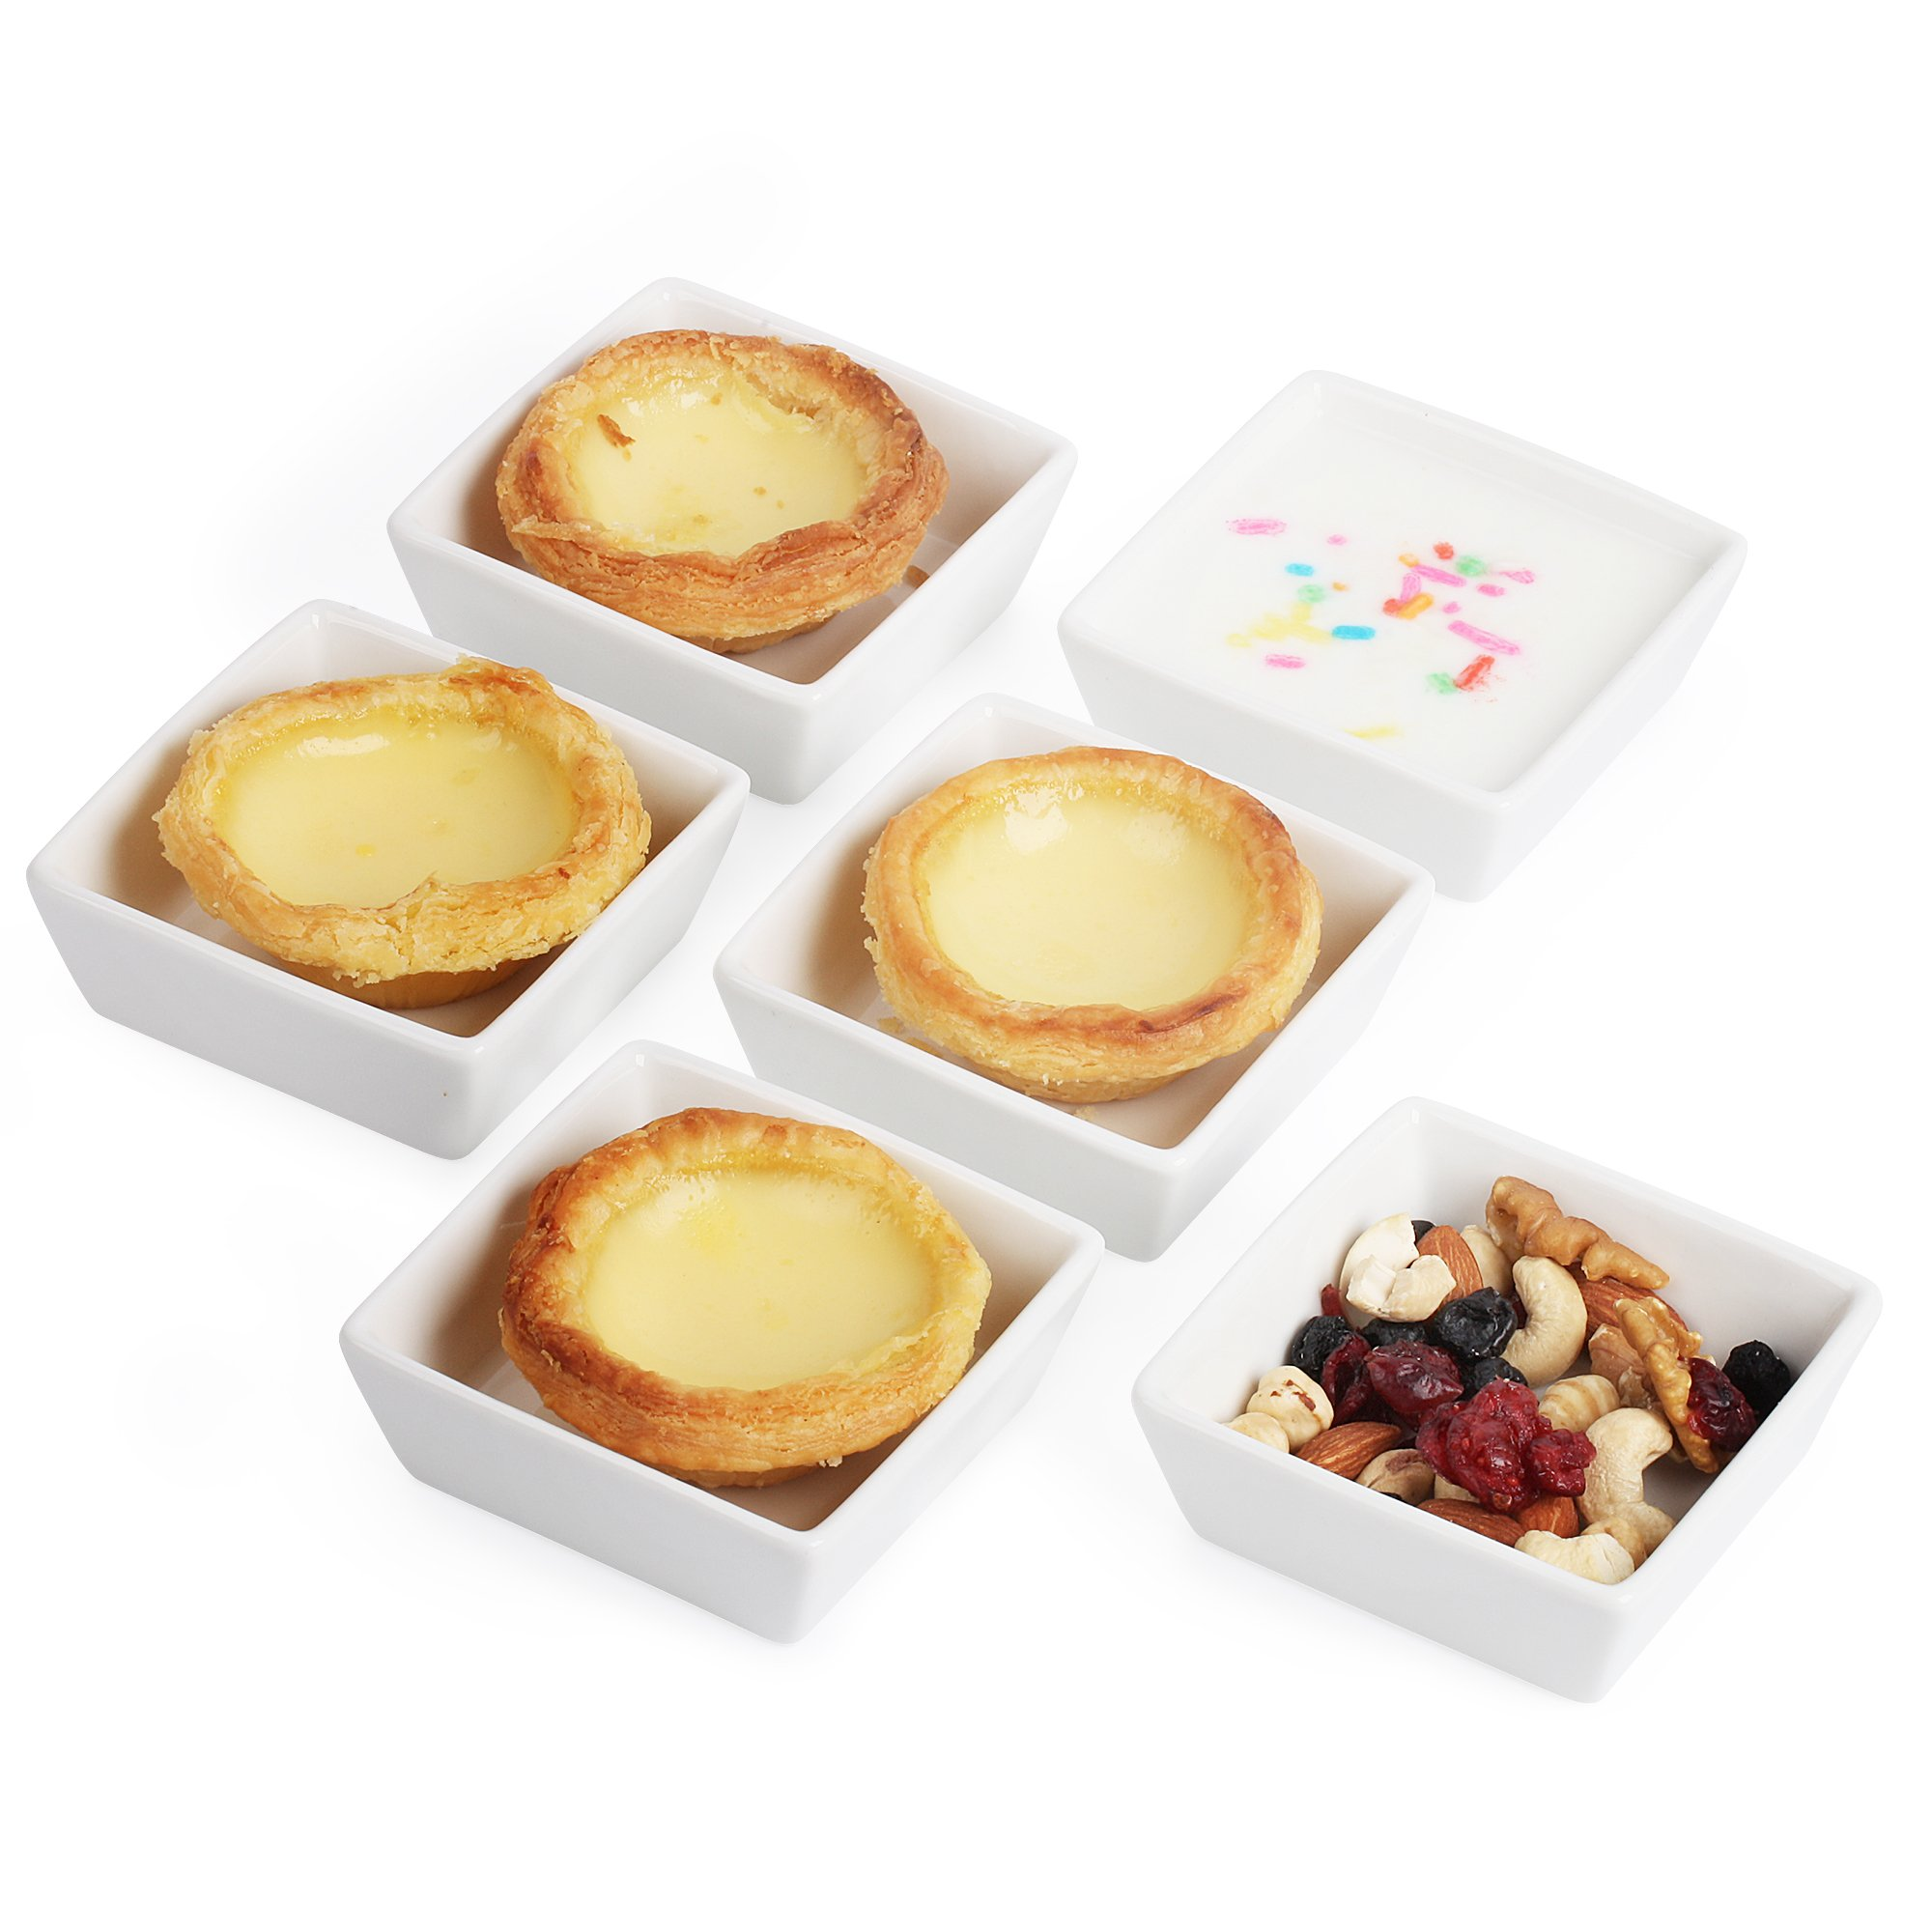 BTäT- Ramekins 4 oz Square, Set of 6 Ramekins for Baking, Creme Brulee Dishes, Souffle Cups, Flan Pan, Sauce Cups, Custard Cups, Pudding Cups, Desert Bowls, Dipping Bowls, Baking Bowls, Small Ramekins by Brew To A Tea (Image #4)